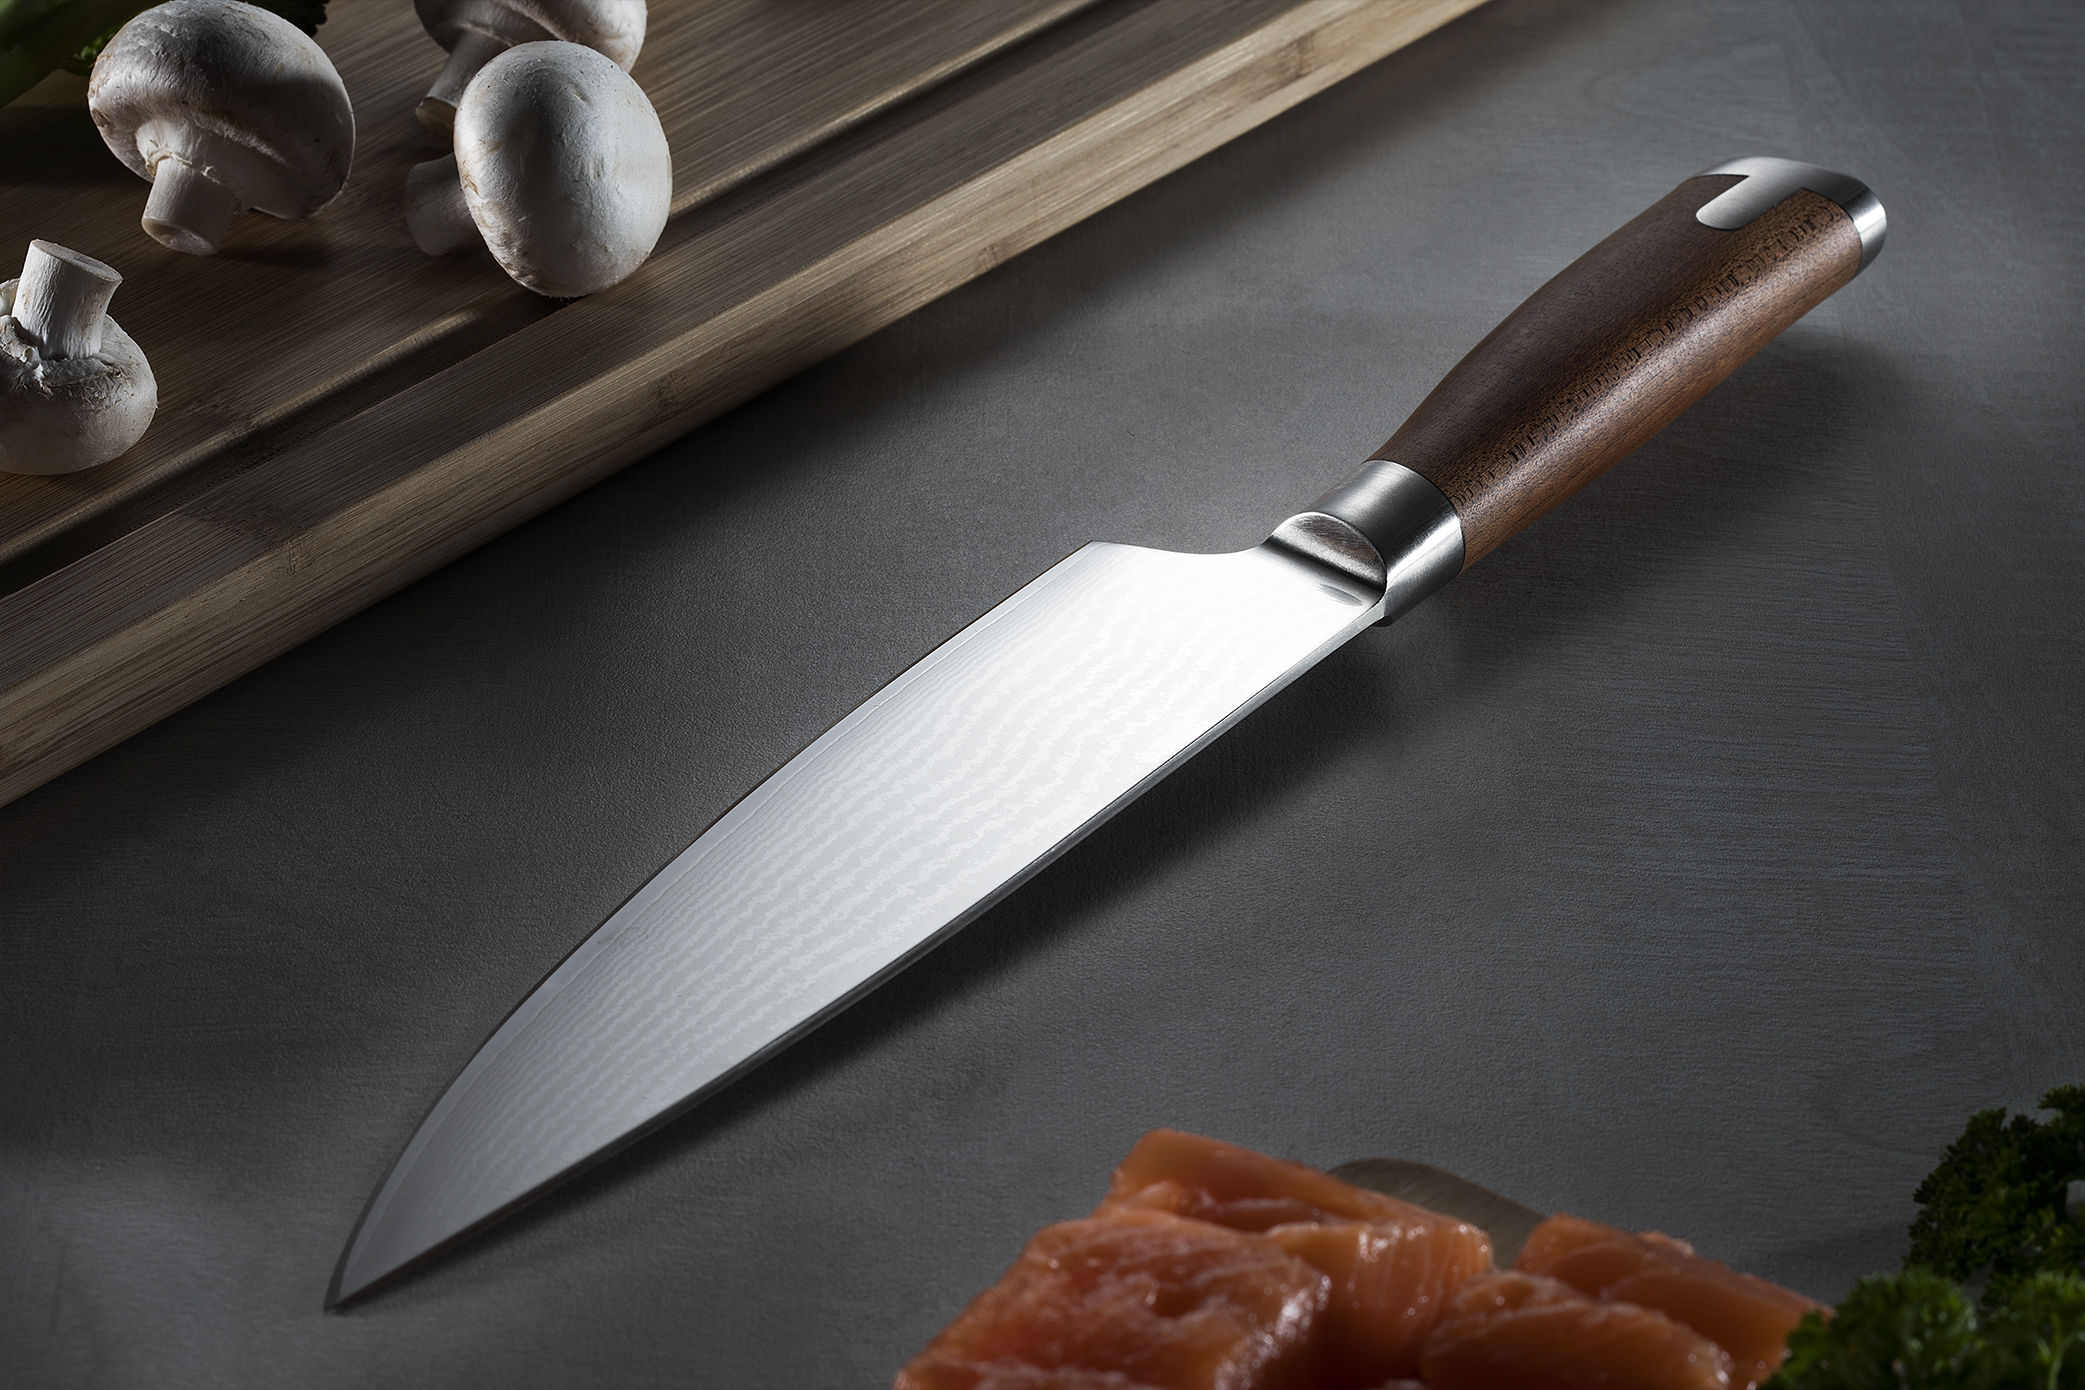 Universal Gyuto-style kitchen knife